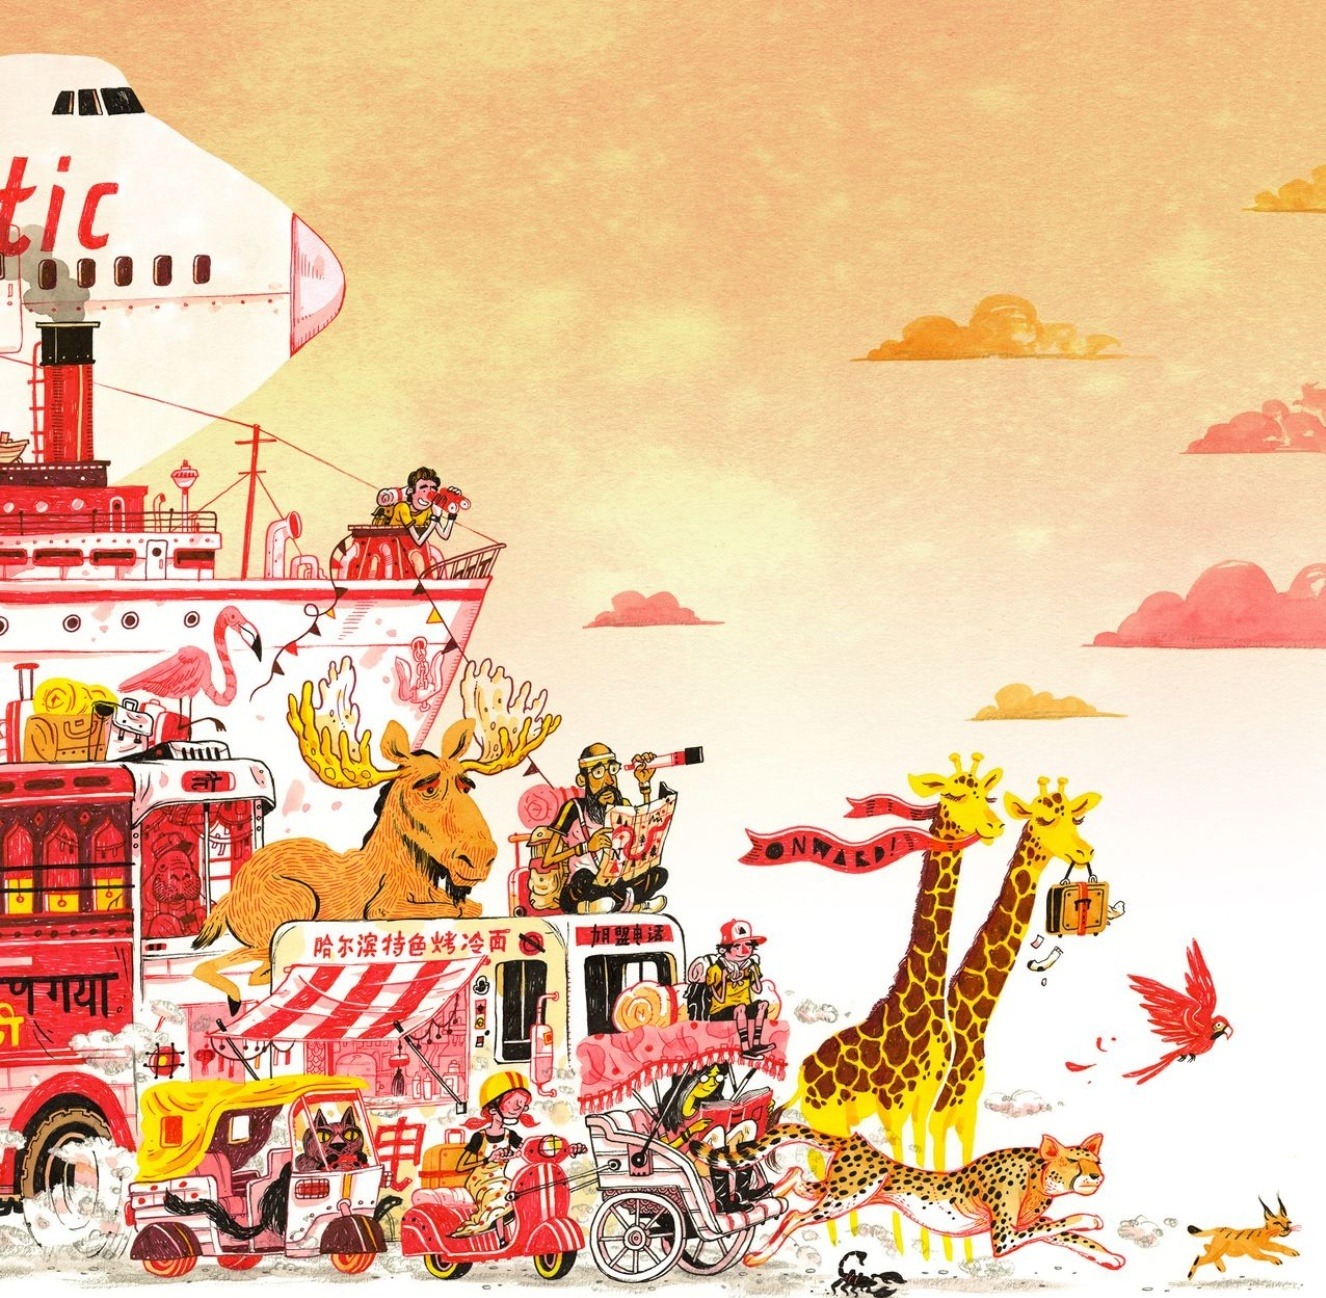 Illustration of a crowd of animals, people, and vehicles, all headed in one direction, largely in tones of red, orange, and yellow.